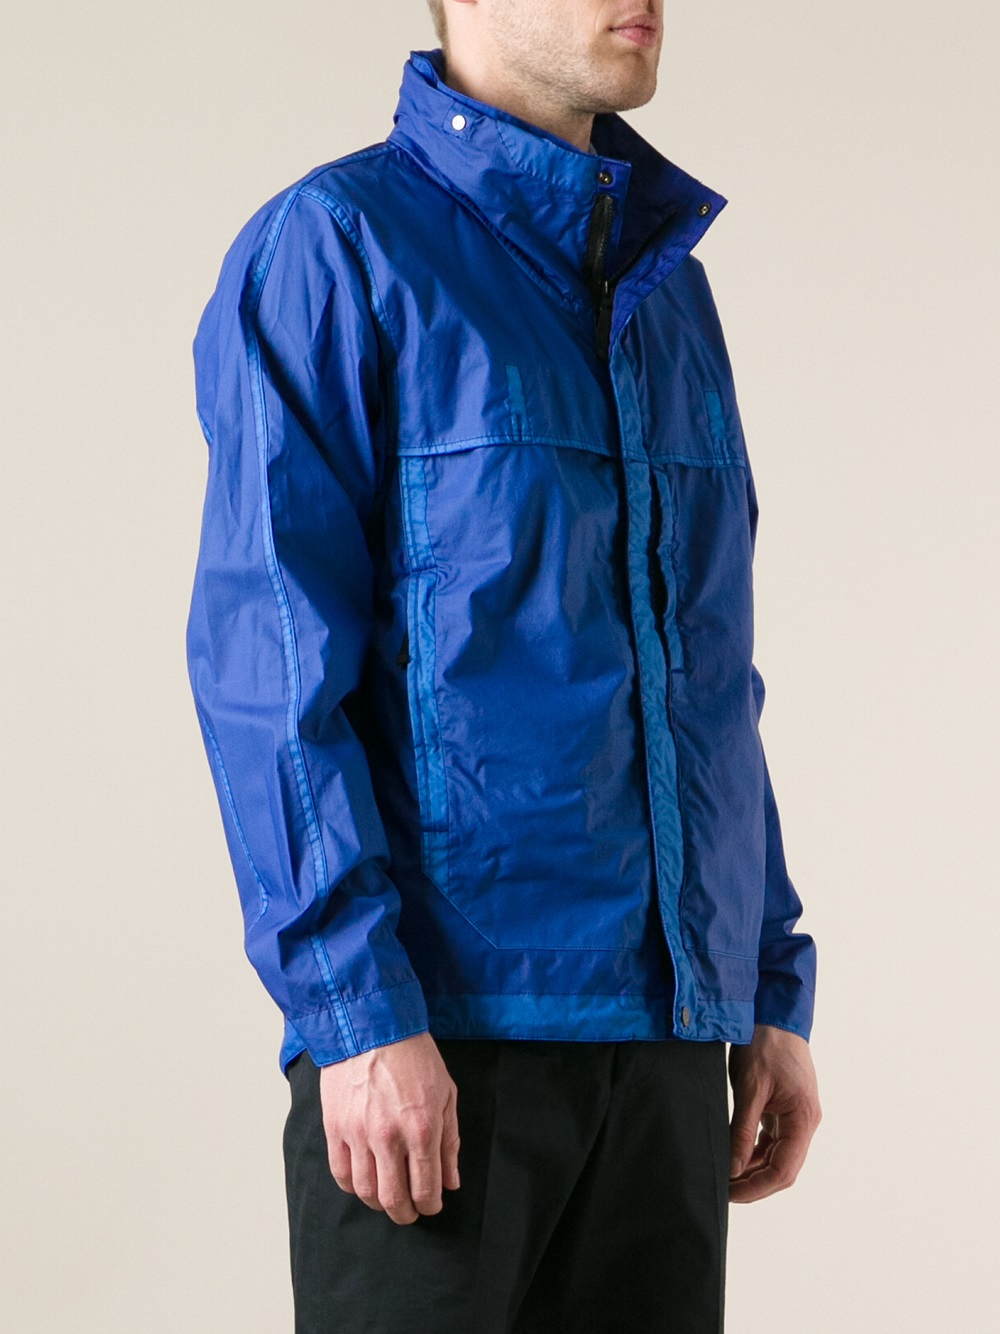 lyst stone island windbreaker jacket in blue for men. Black Bedroom Furniture Sets. Home Design Ideas